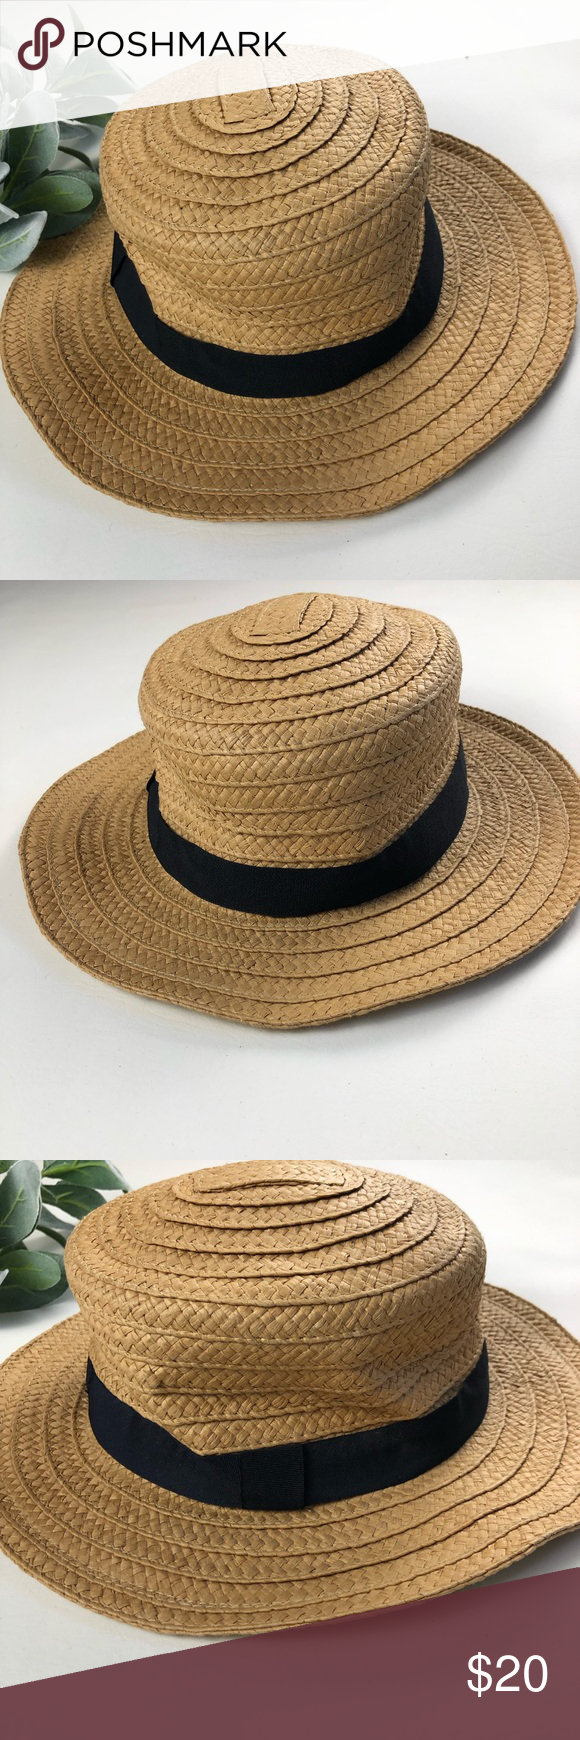 2ff1f1a88582a HINGE Nordstrom Straw Boater Hat One Size Brand new with tags Hinge  Nordstrom straw boater hat